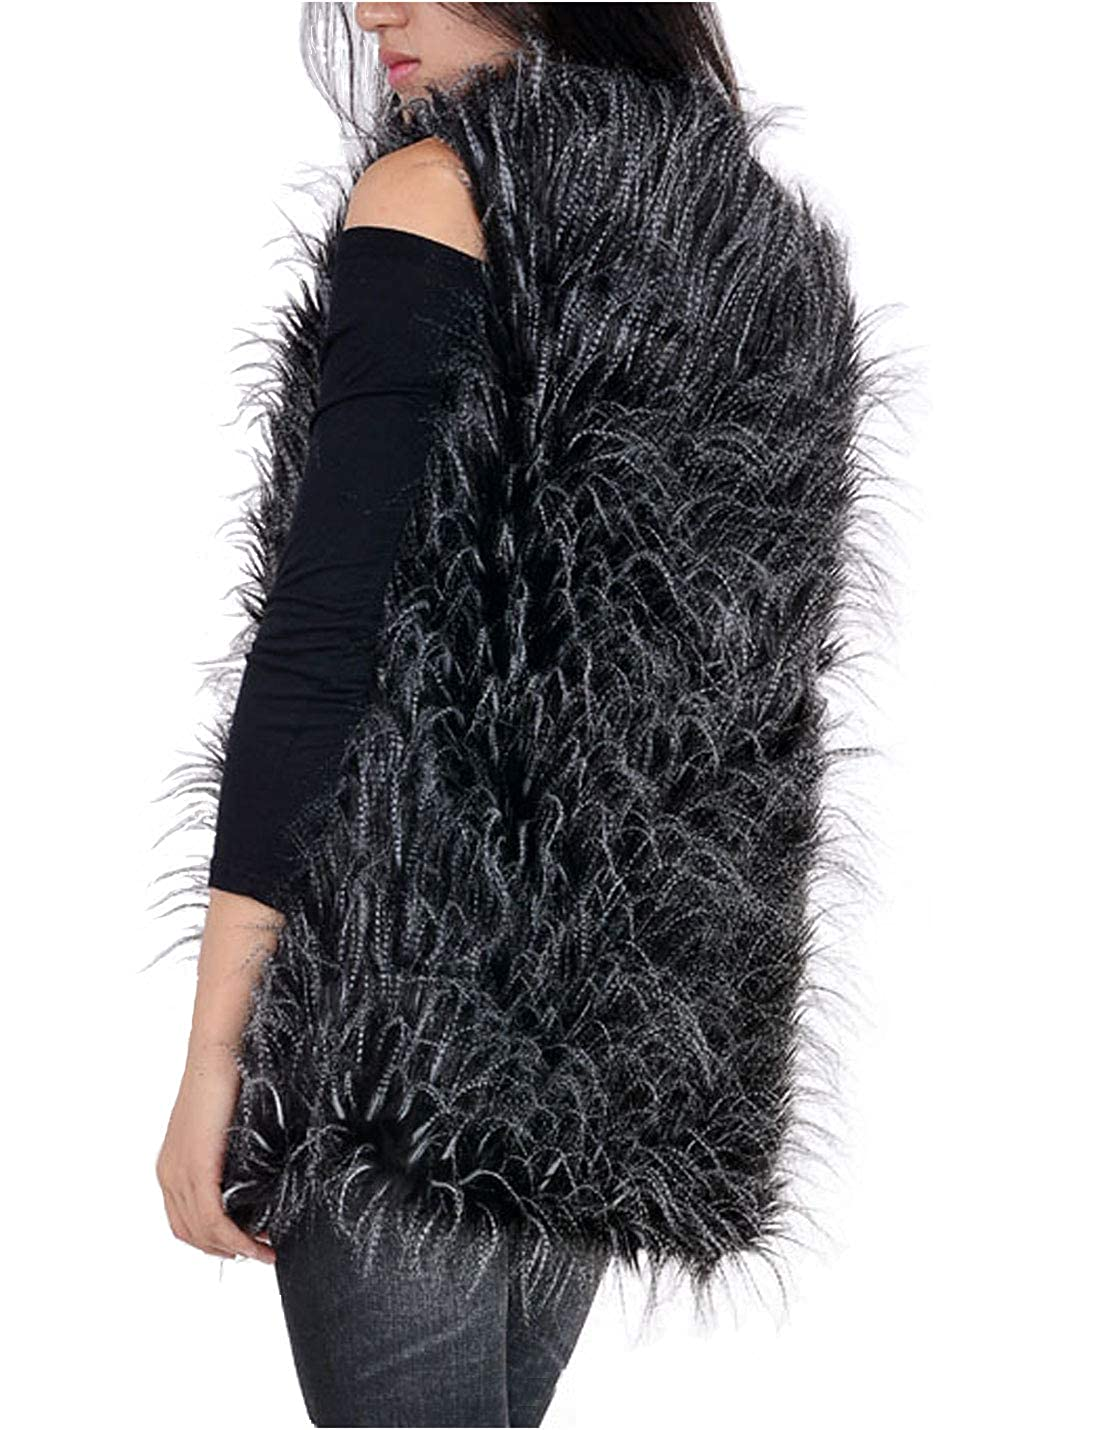 Flygo Women's Fashion Autumn Winter Warm Faux Fur Vests Sleeveless Jacket Waistcoat